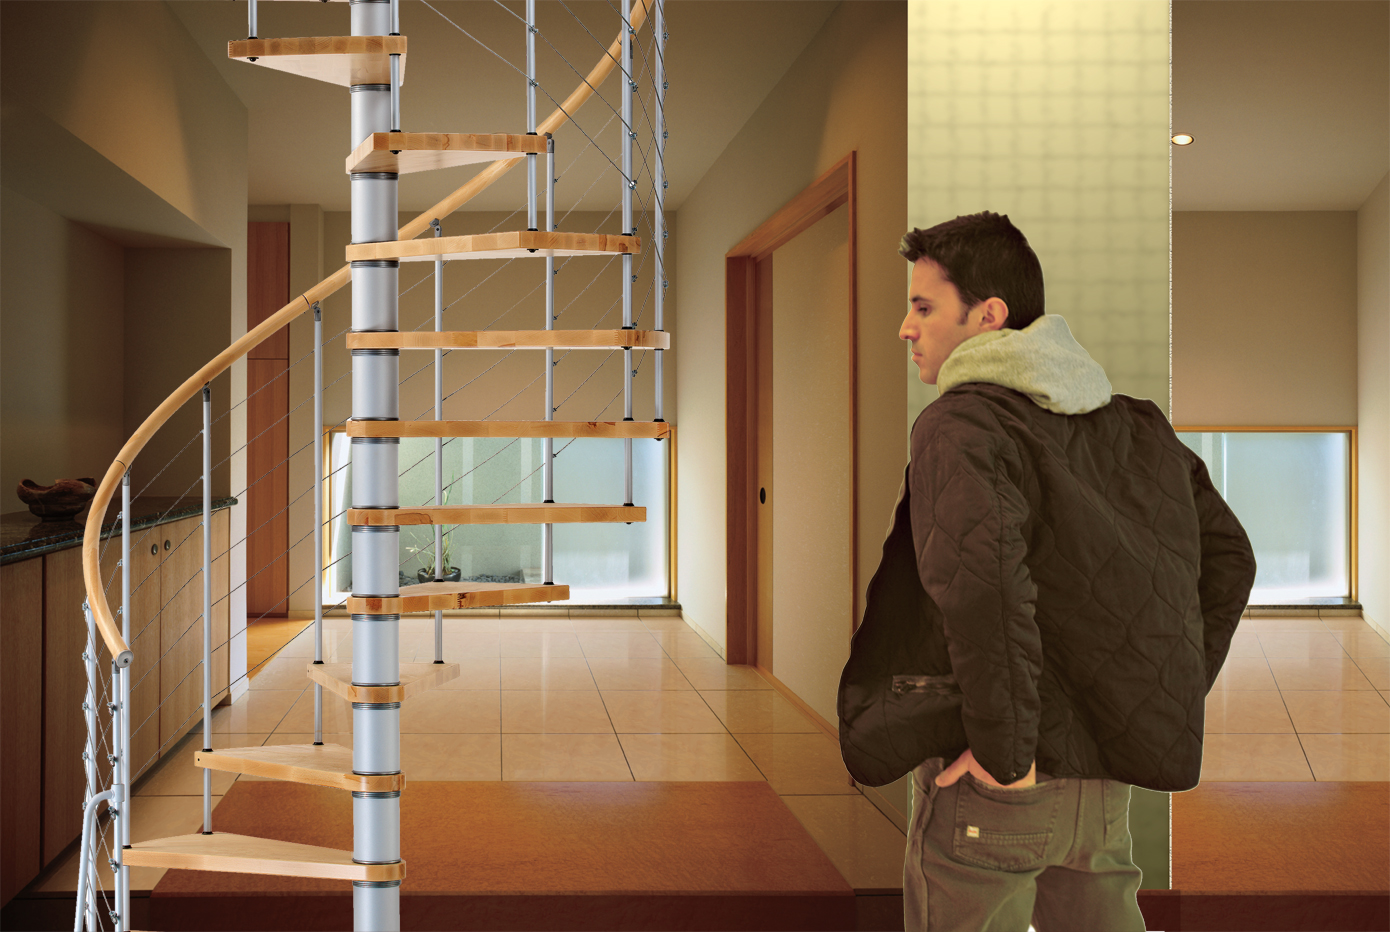 Vogue Spiral Staircase Kit The Staircase People Spiral